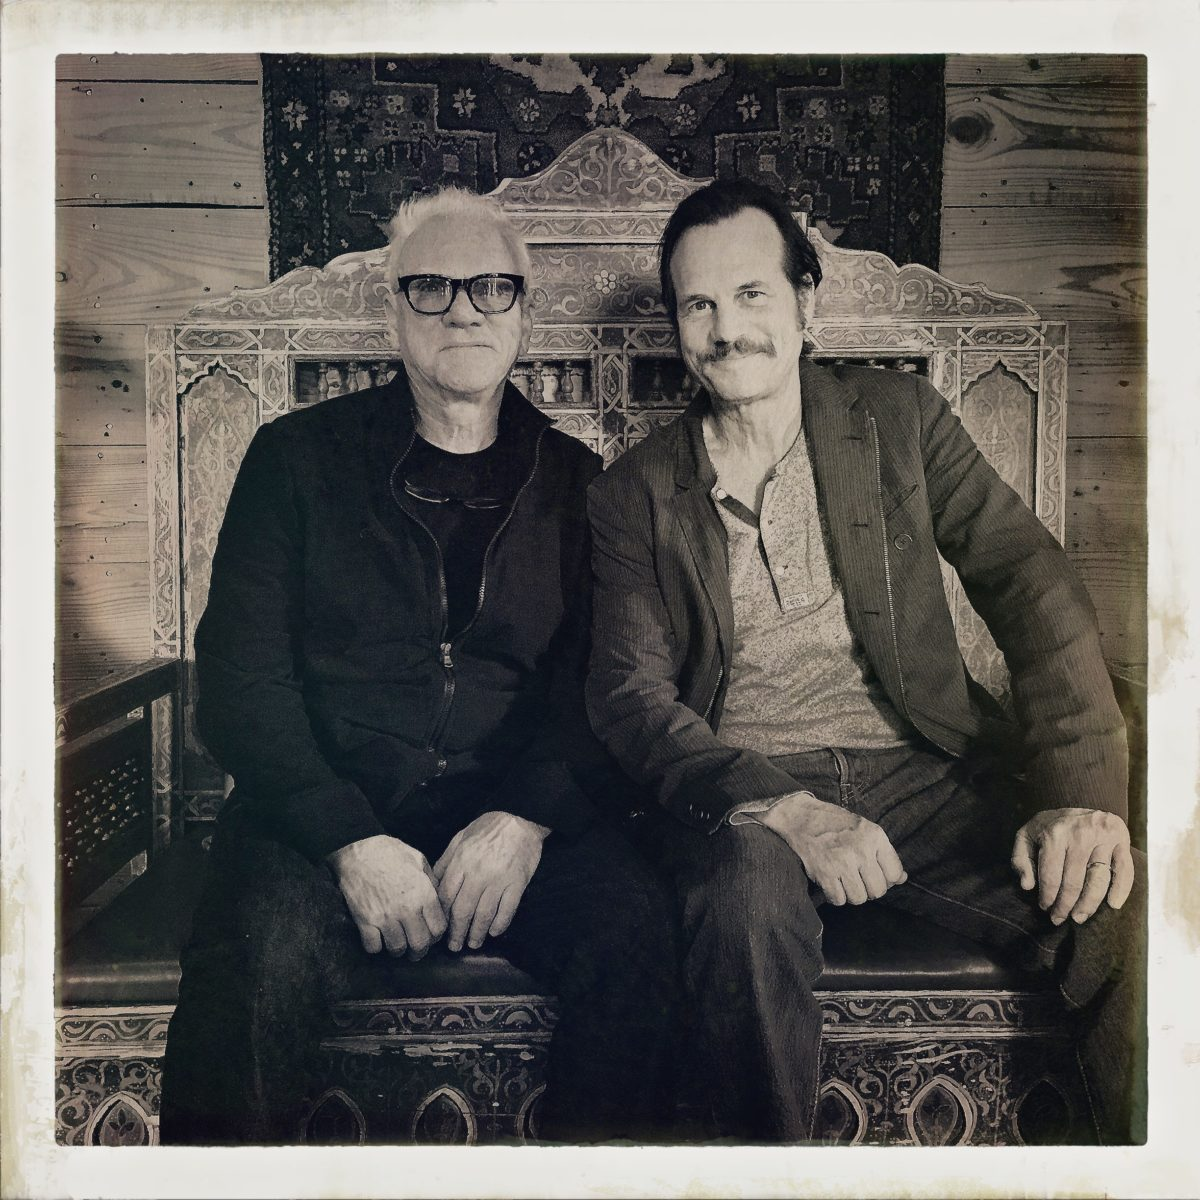 Bill Paxton and Malcolm McDowell, Ojai friends and neighbors